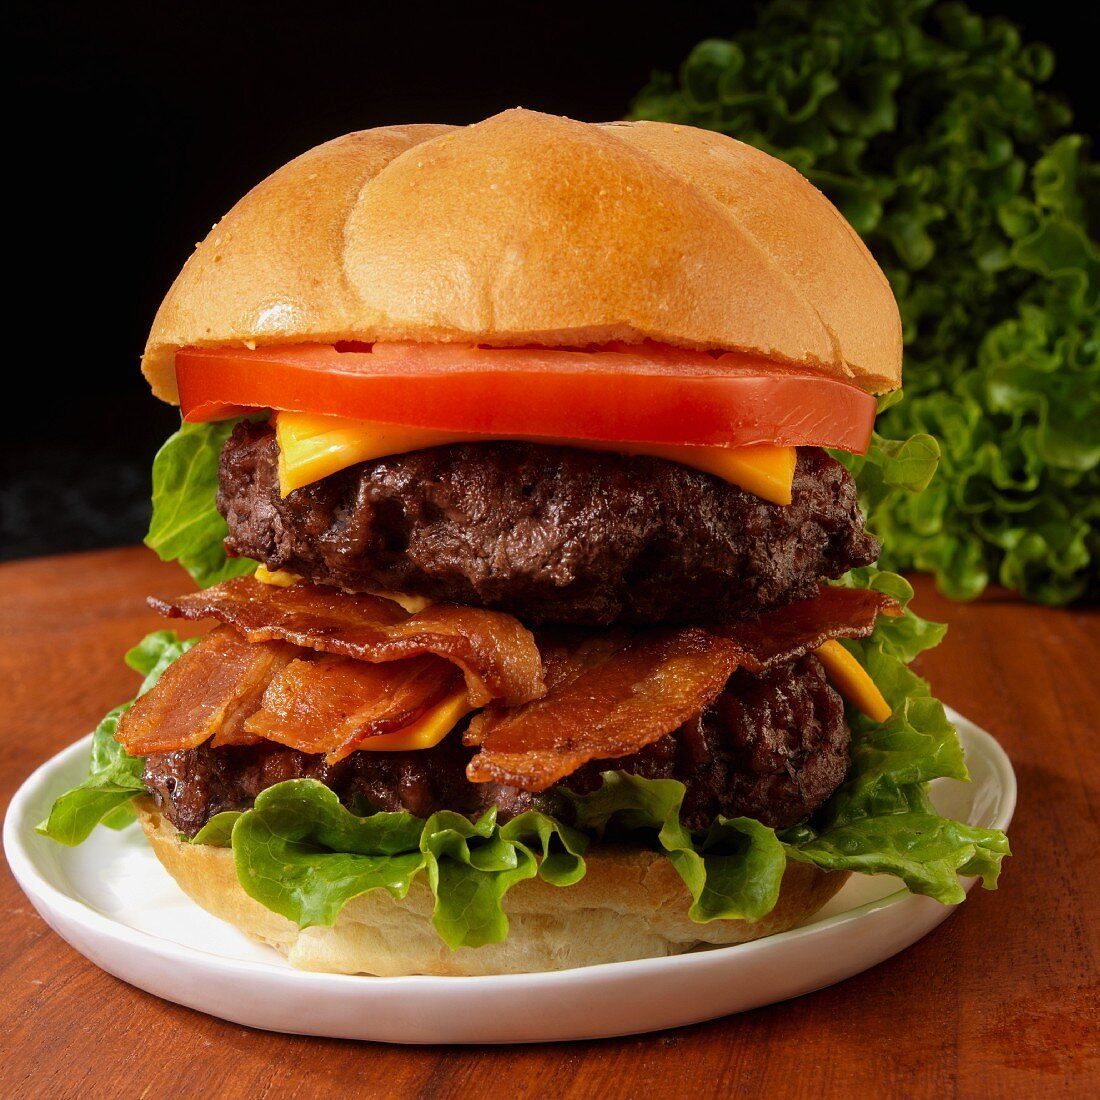 Double Cheeseburger with bacon, tomato and lettuce